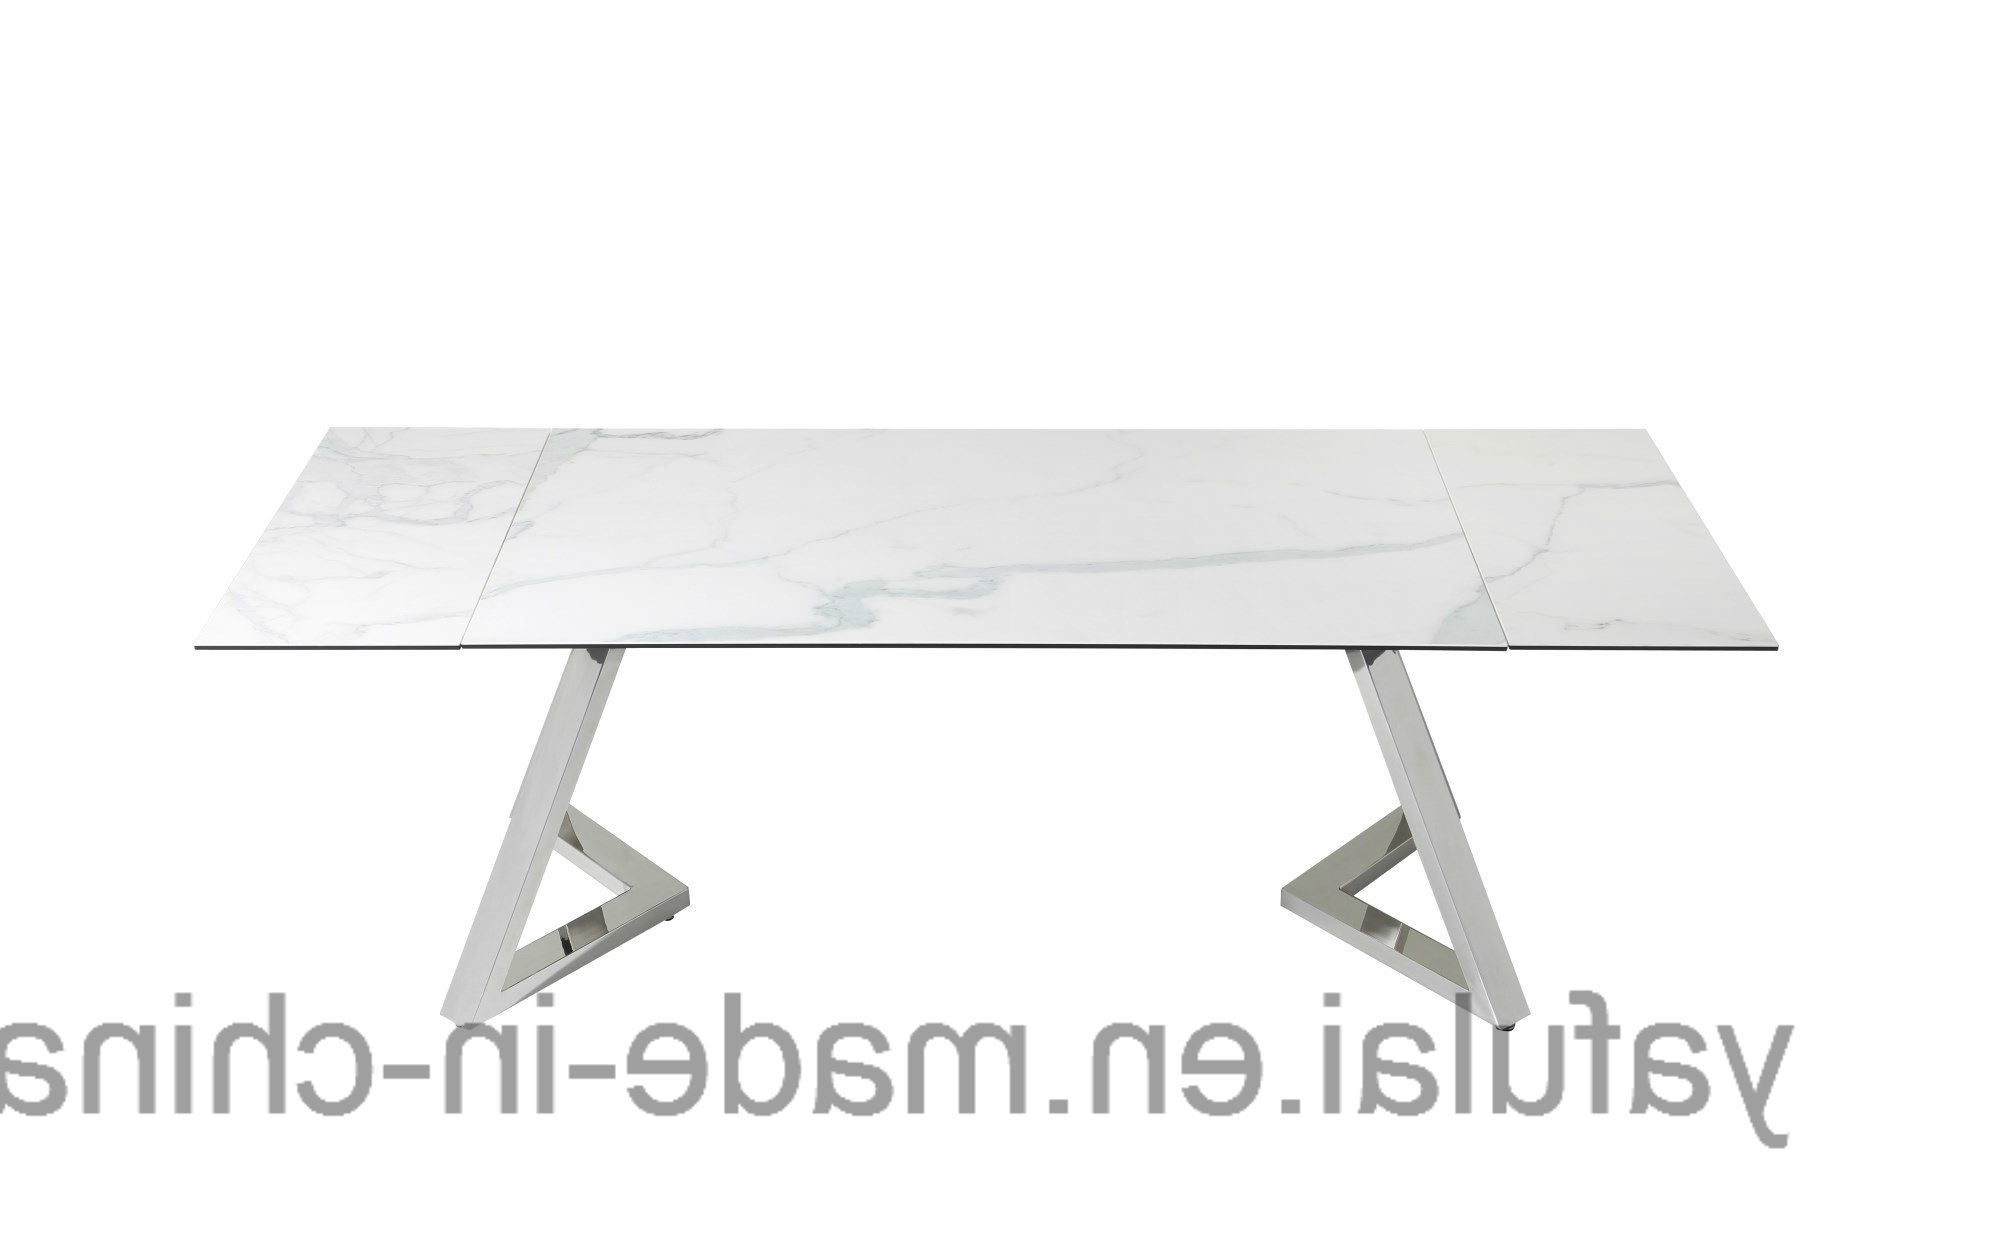 [%[Hot Item] Modern Extension Tempered Glass Ceramic Top Stainless Steel  Dining Table Intended For Fashionable Modern Glass Top Extension Dining Tables In Stainless Modern Glass Top Extension Dining Tables In Stainless In 2017 [Hot Item] Modern Extension Tempered Glass Ceramic Top Stainless Steel  Dining Table Well Known Modern Glass Top Extension Dining Tables In Stainless With Regard To [Hot Item] Modern Extension Tempered Glass Ceramic Top Stainless Steel  Dining Table Widely Used [Hot Item] Modern Extension Tempered Glass Ceramic Top Stainless Steel  Dining Table Regarding Modern Glass Top Extension Dining Tables In Stainless%] (View 2 of 30)